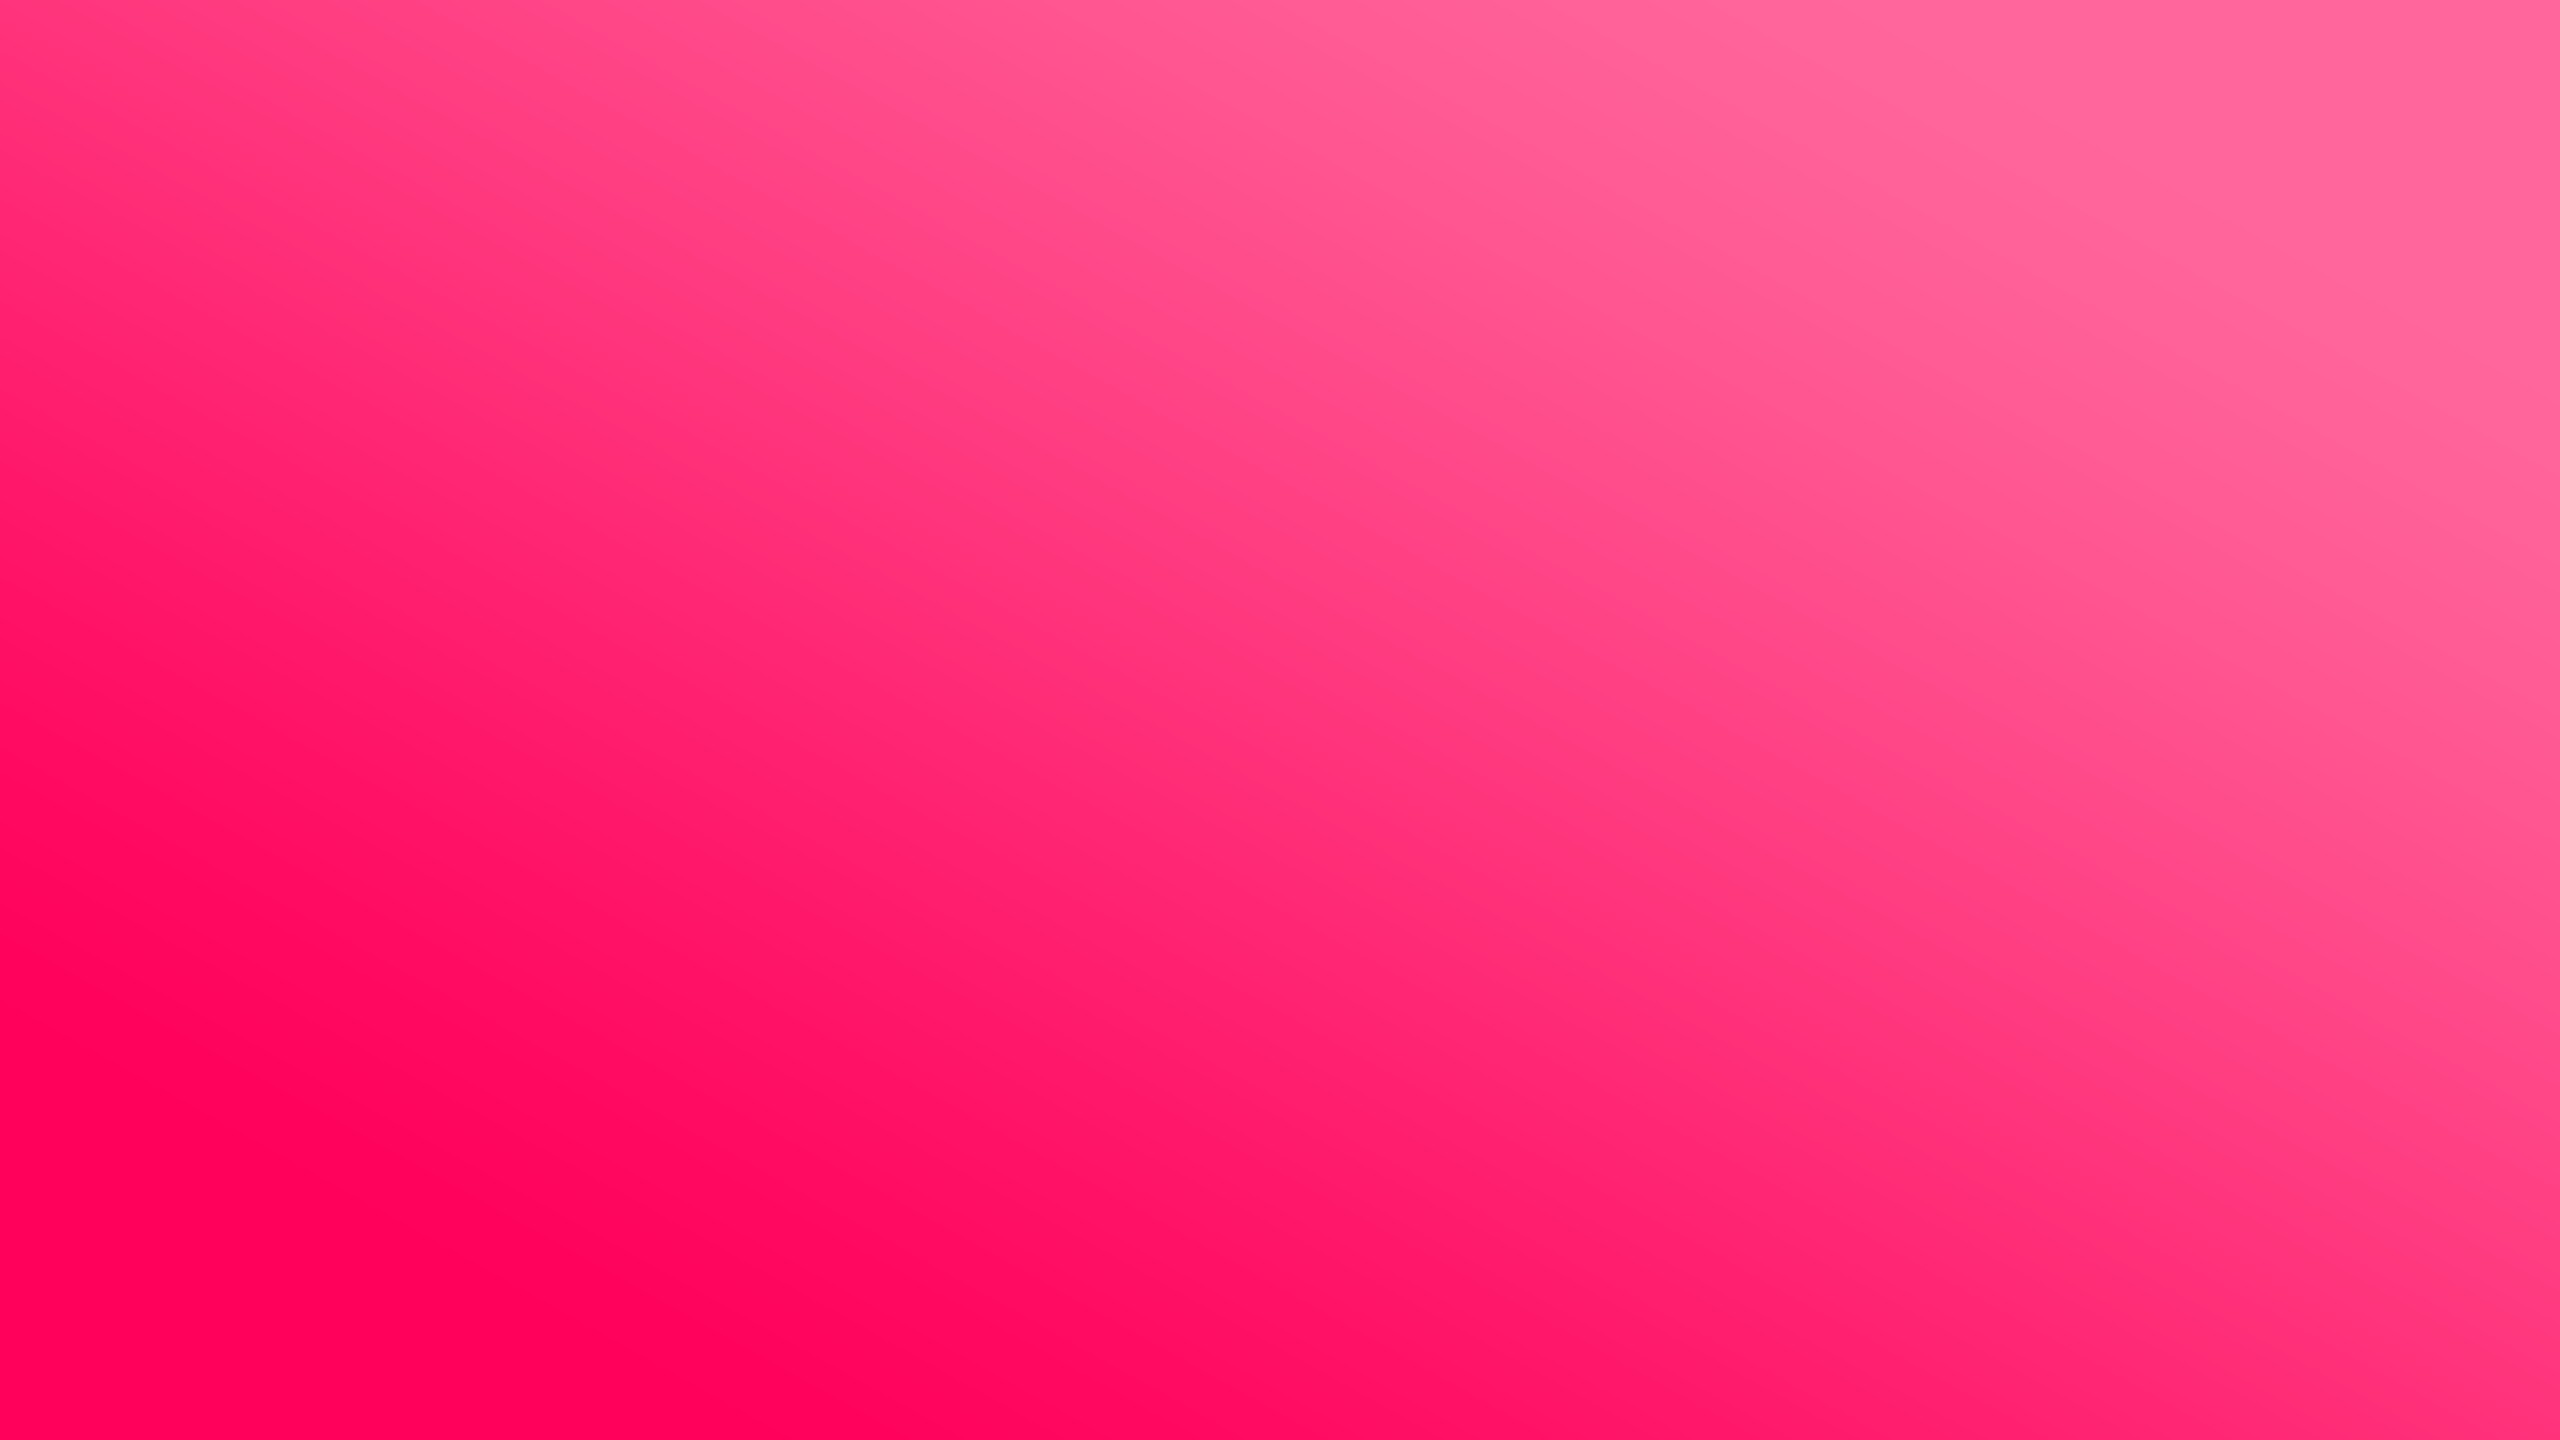 pink colour - Pink (Co...